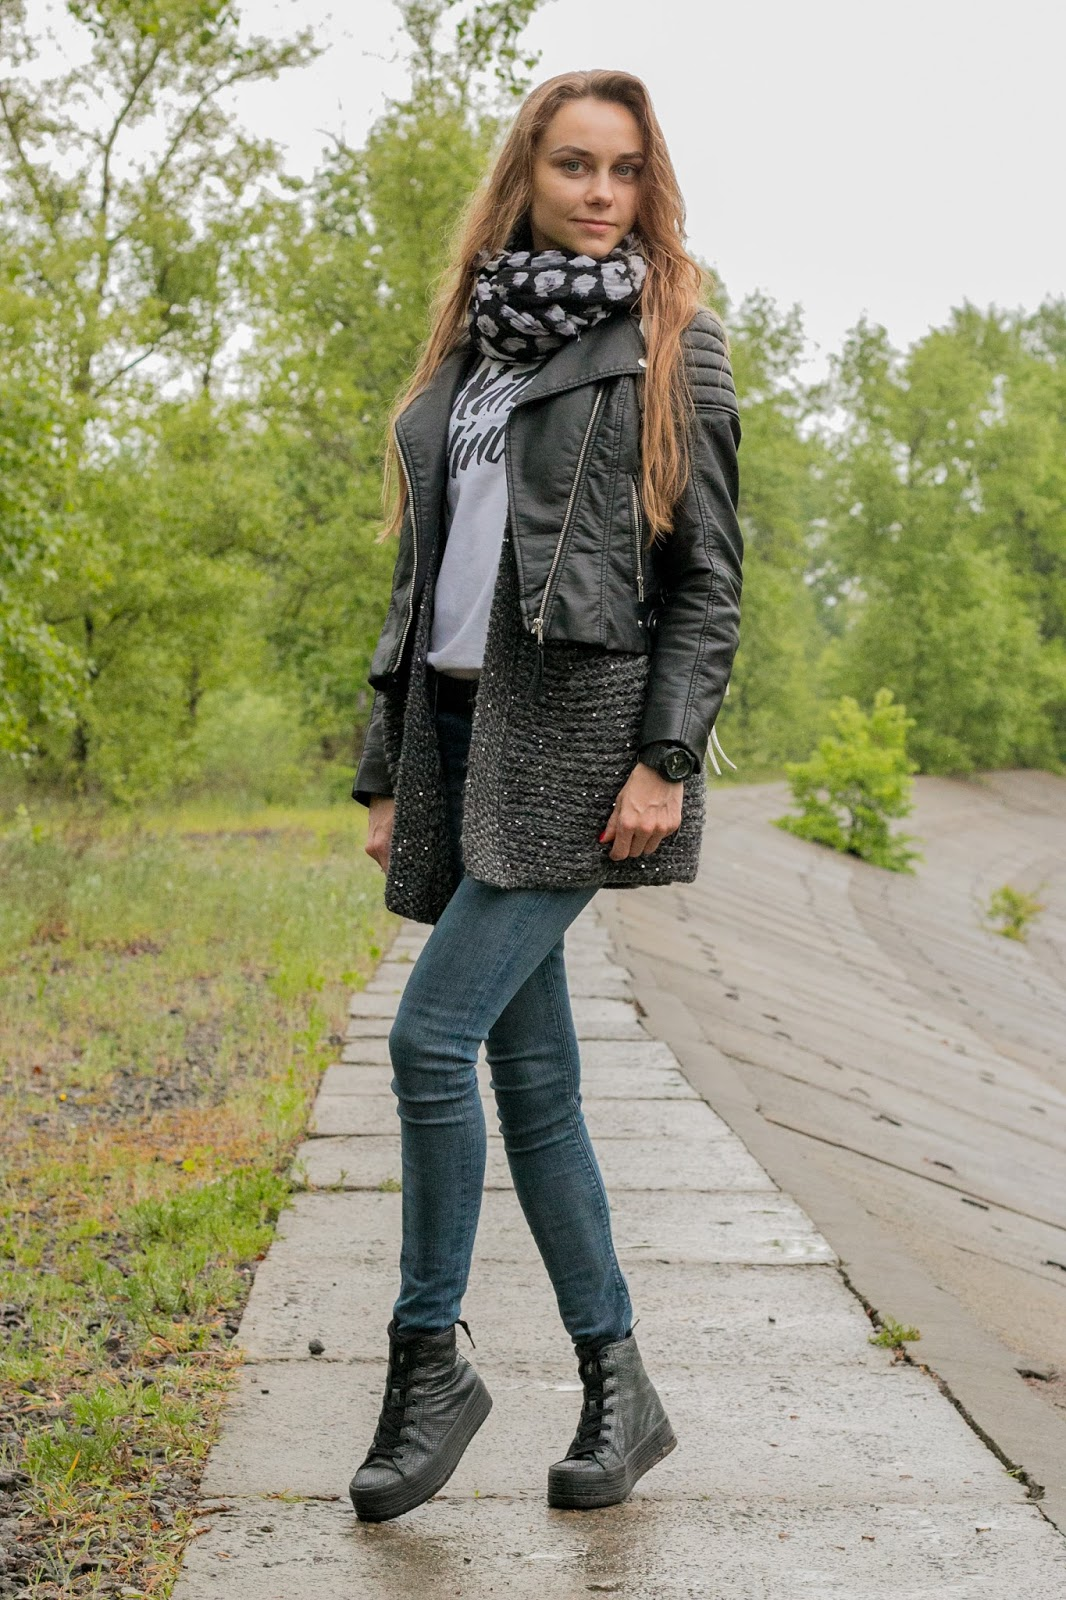 LookOn, look, lookbook, outfit, outfits, ootd, wiw, wiwt, style, fashion, fashion blog, fashion blogger, inspiration, platform sneakers, oversized cardigan, leather jacket, t-shirt, jeans, studded backpack, scarf, wiw, streetstyle, fashionblogger, styleblogger, spring outfit